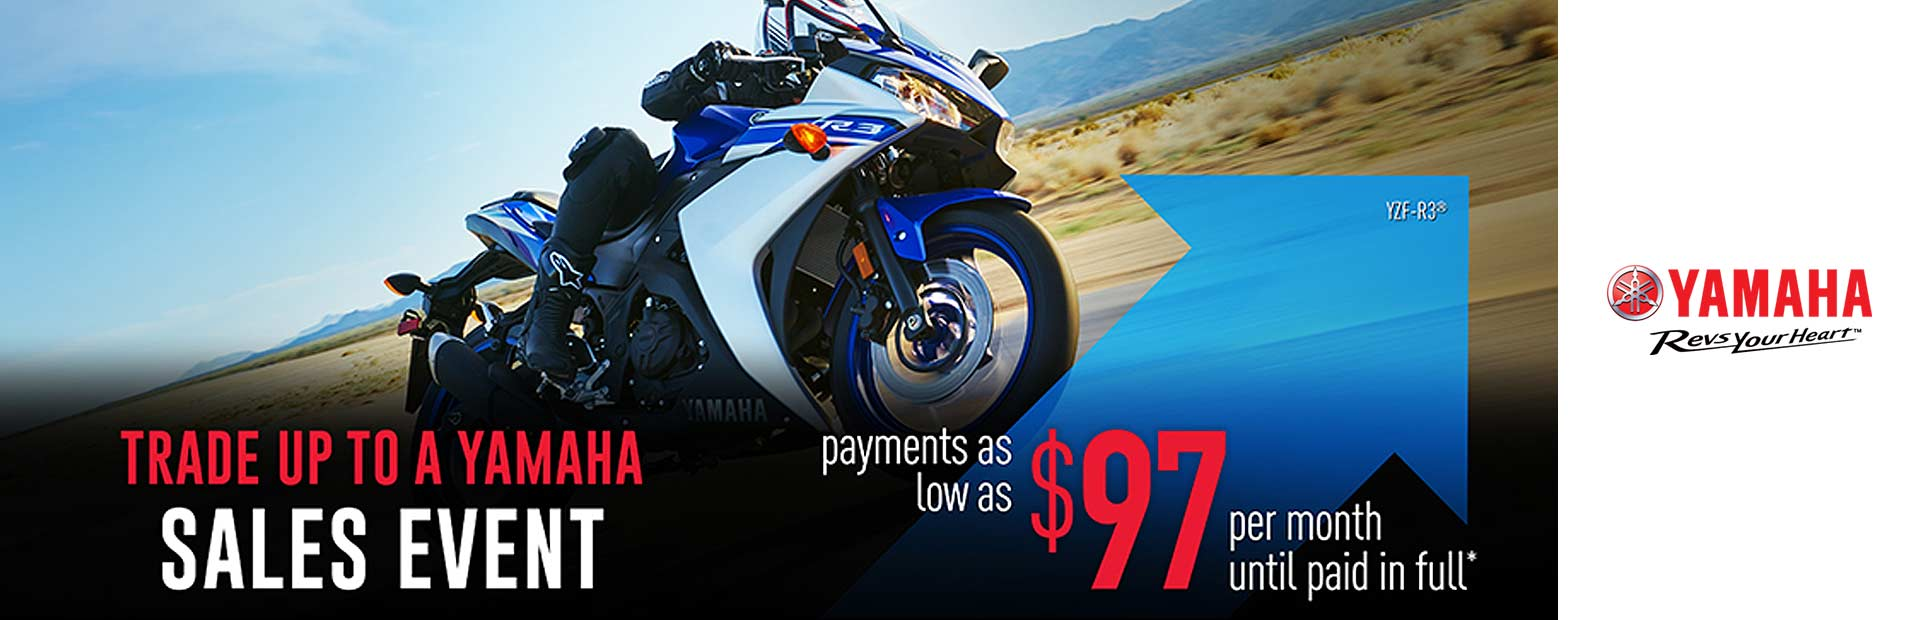 Yamaha: As Low As $97 Per Month Until Paid In Full*